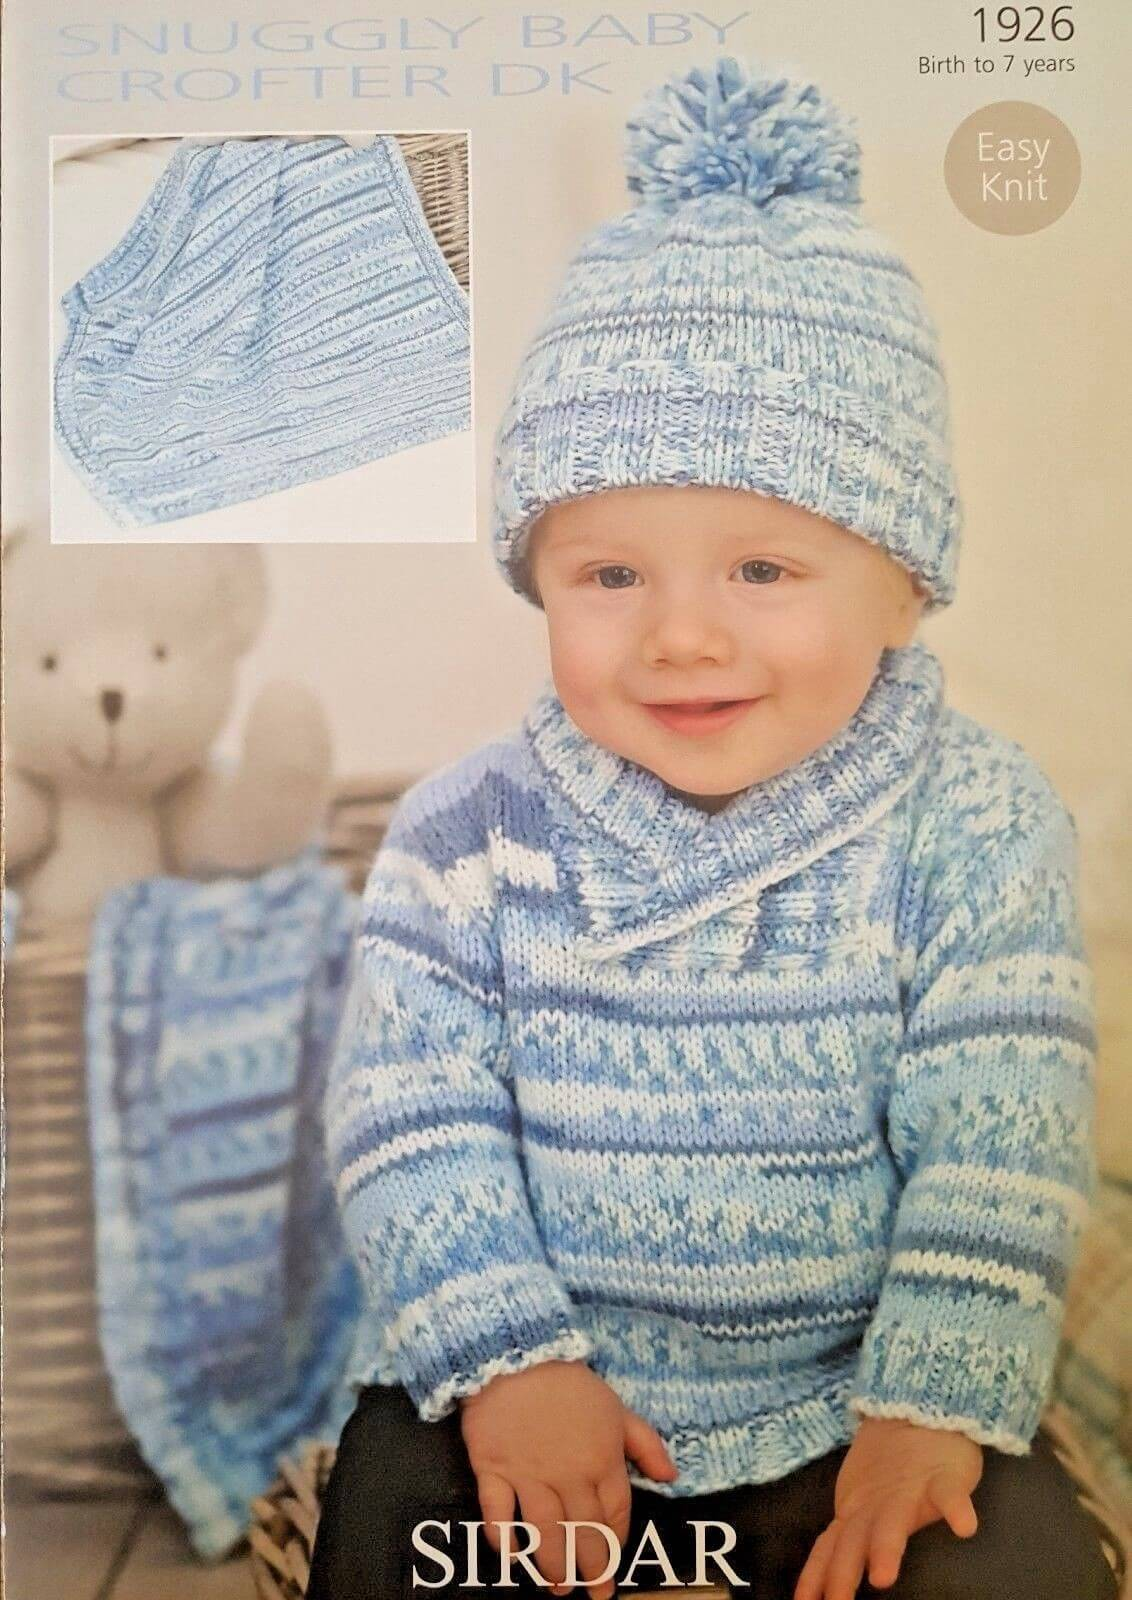 Sirdar Knitting Pattern 1926 Baby Turn Back Hat Cardigan Blabket 0-7 Years